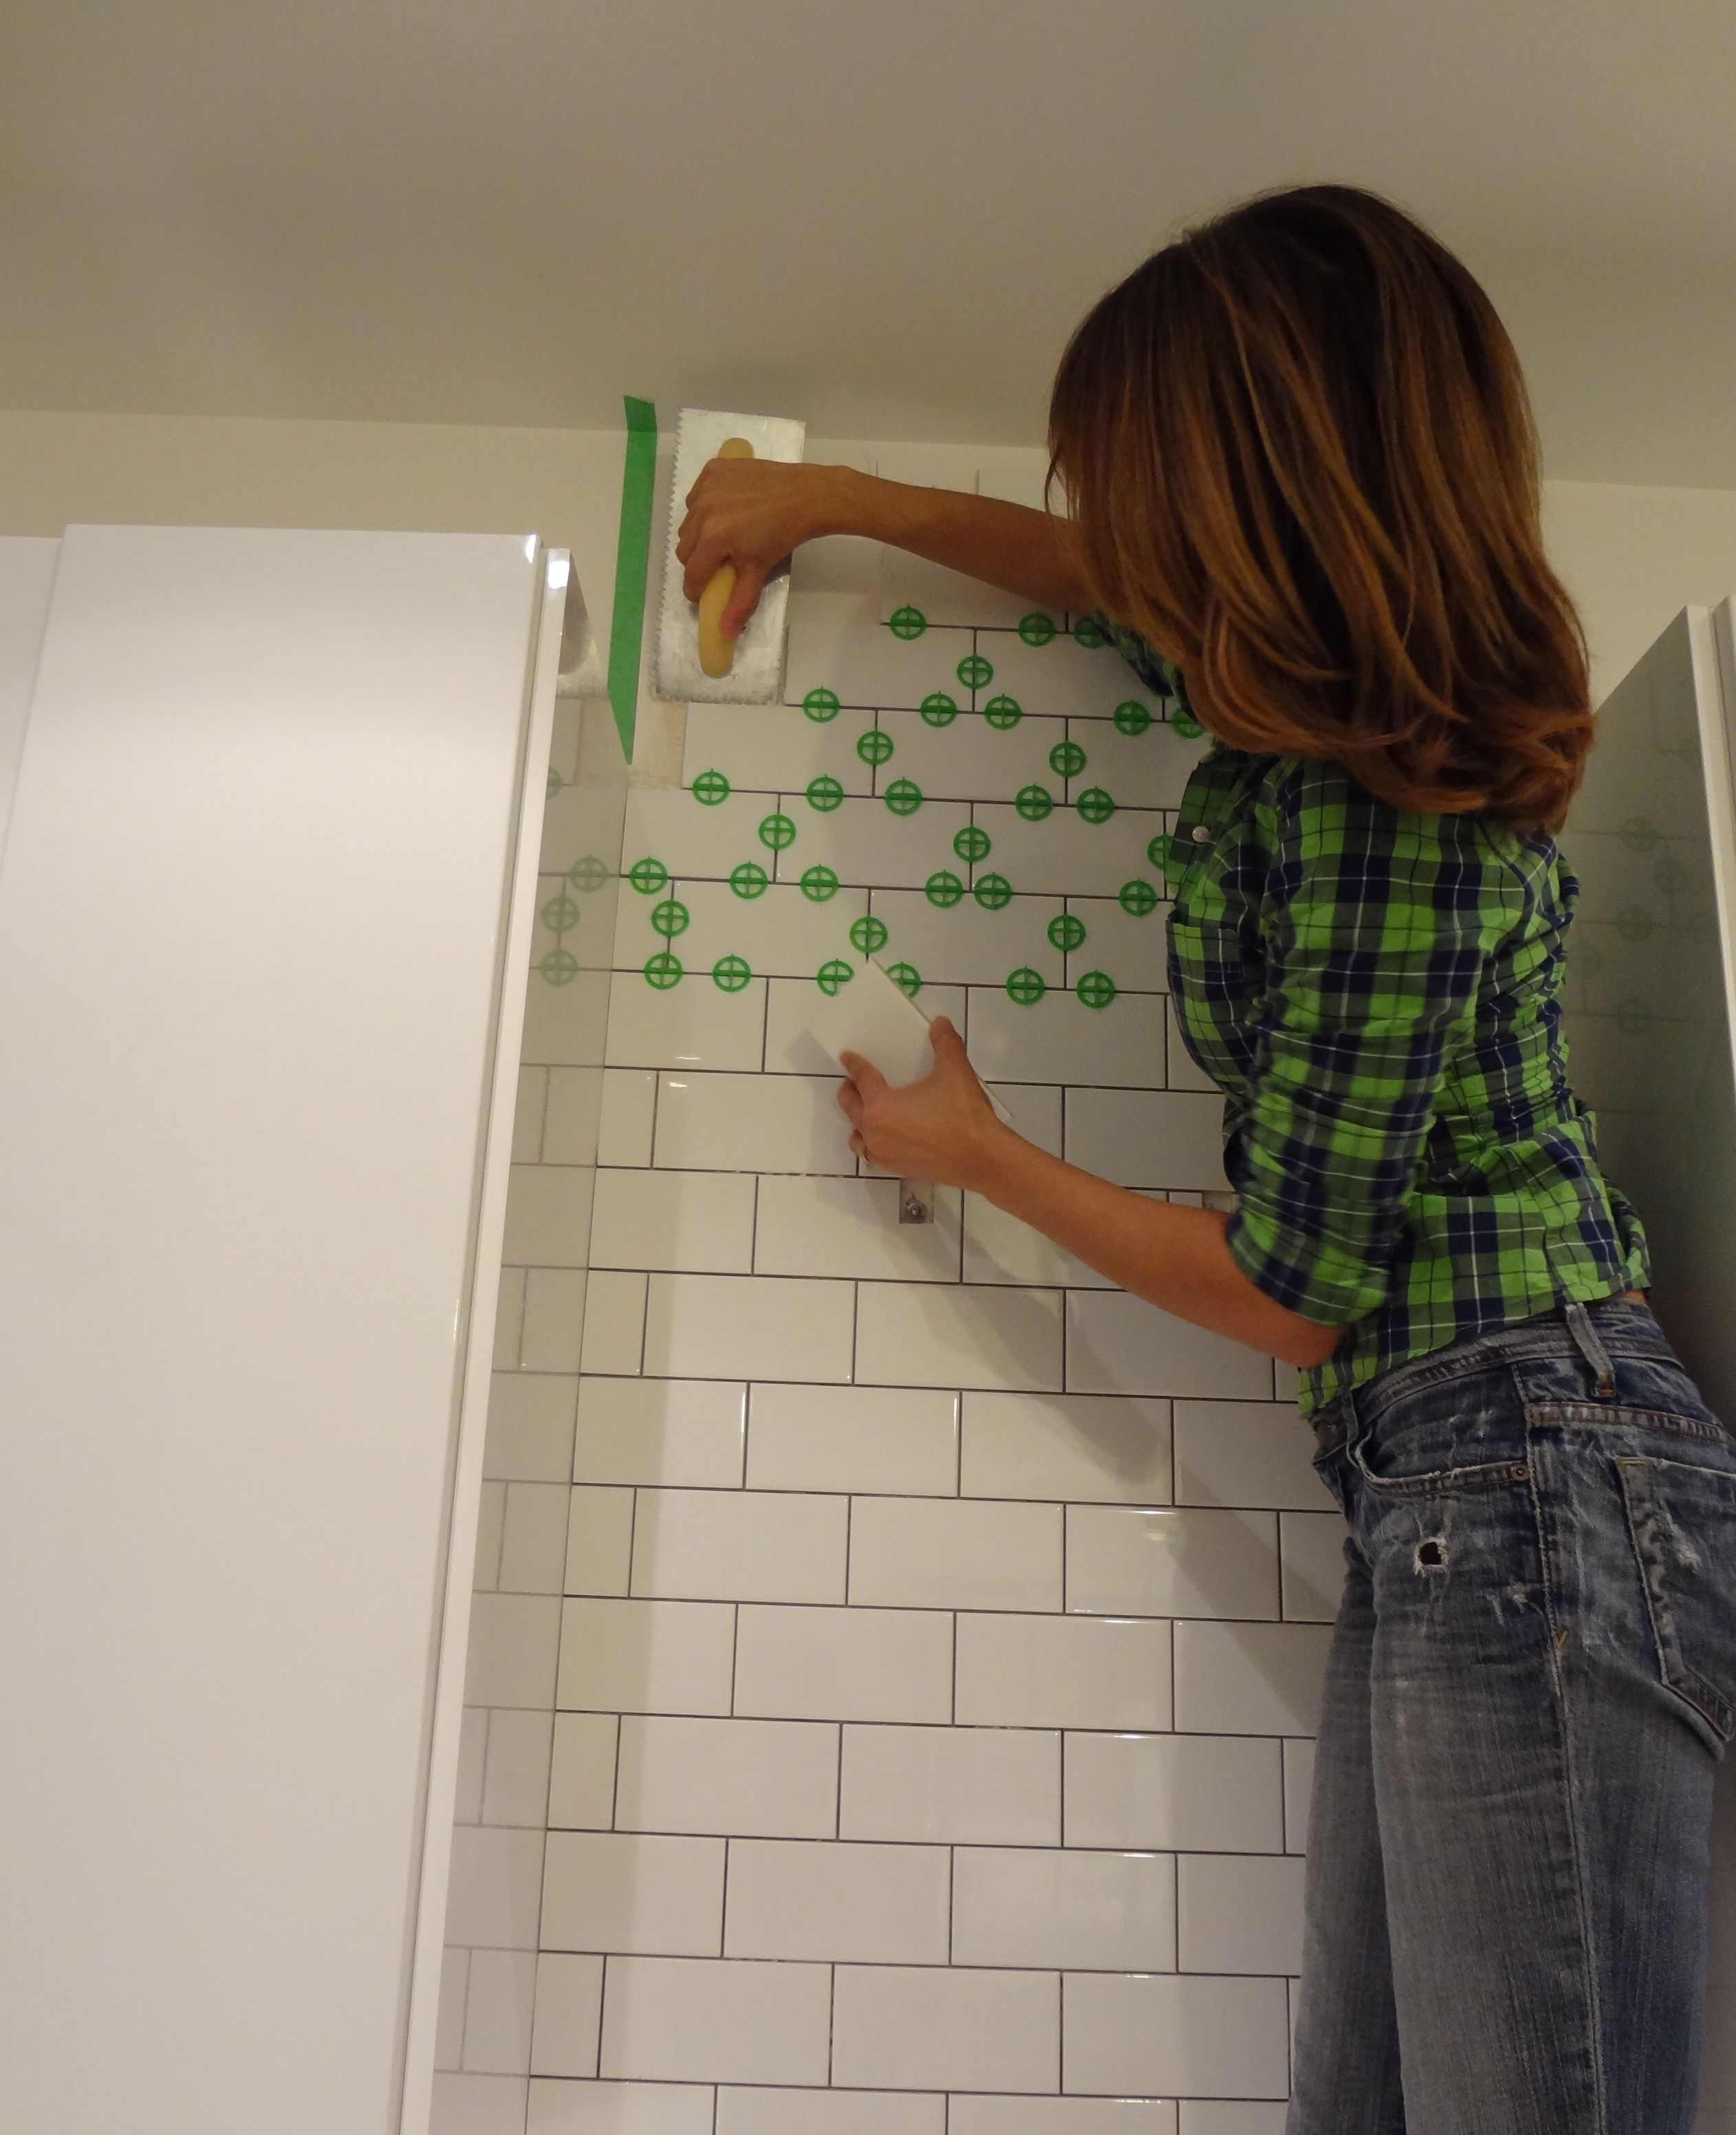 Tiling My Kitchen Backsplash With White Subway Tiles I M Using Using 1 16 Tavy Spacers From Lowes Perfect White Subway Tiles Tile Patterns Kitschy Kitchen